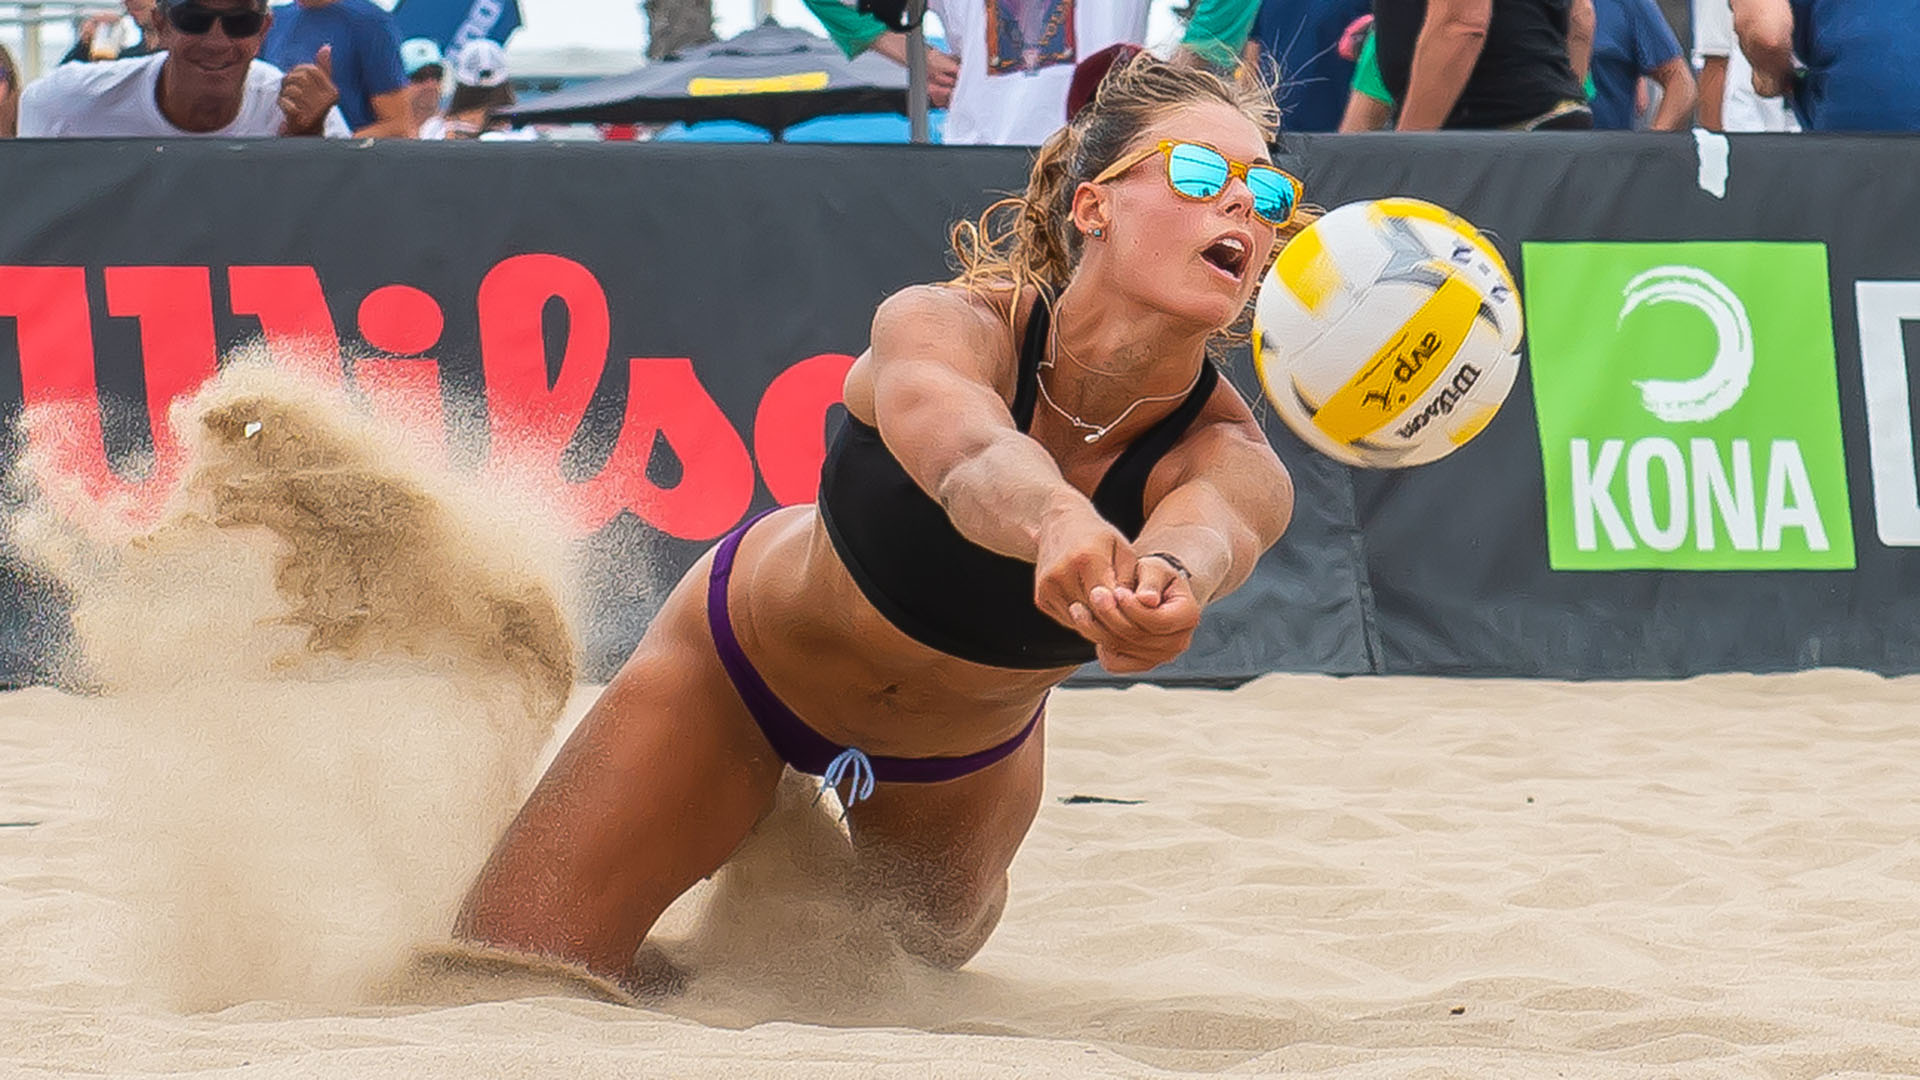 Game Point: Top 10 Beach Volleyball Channels on YouTube